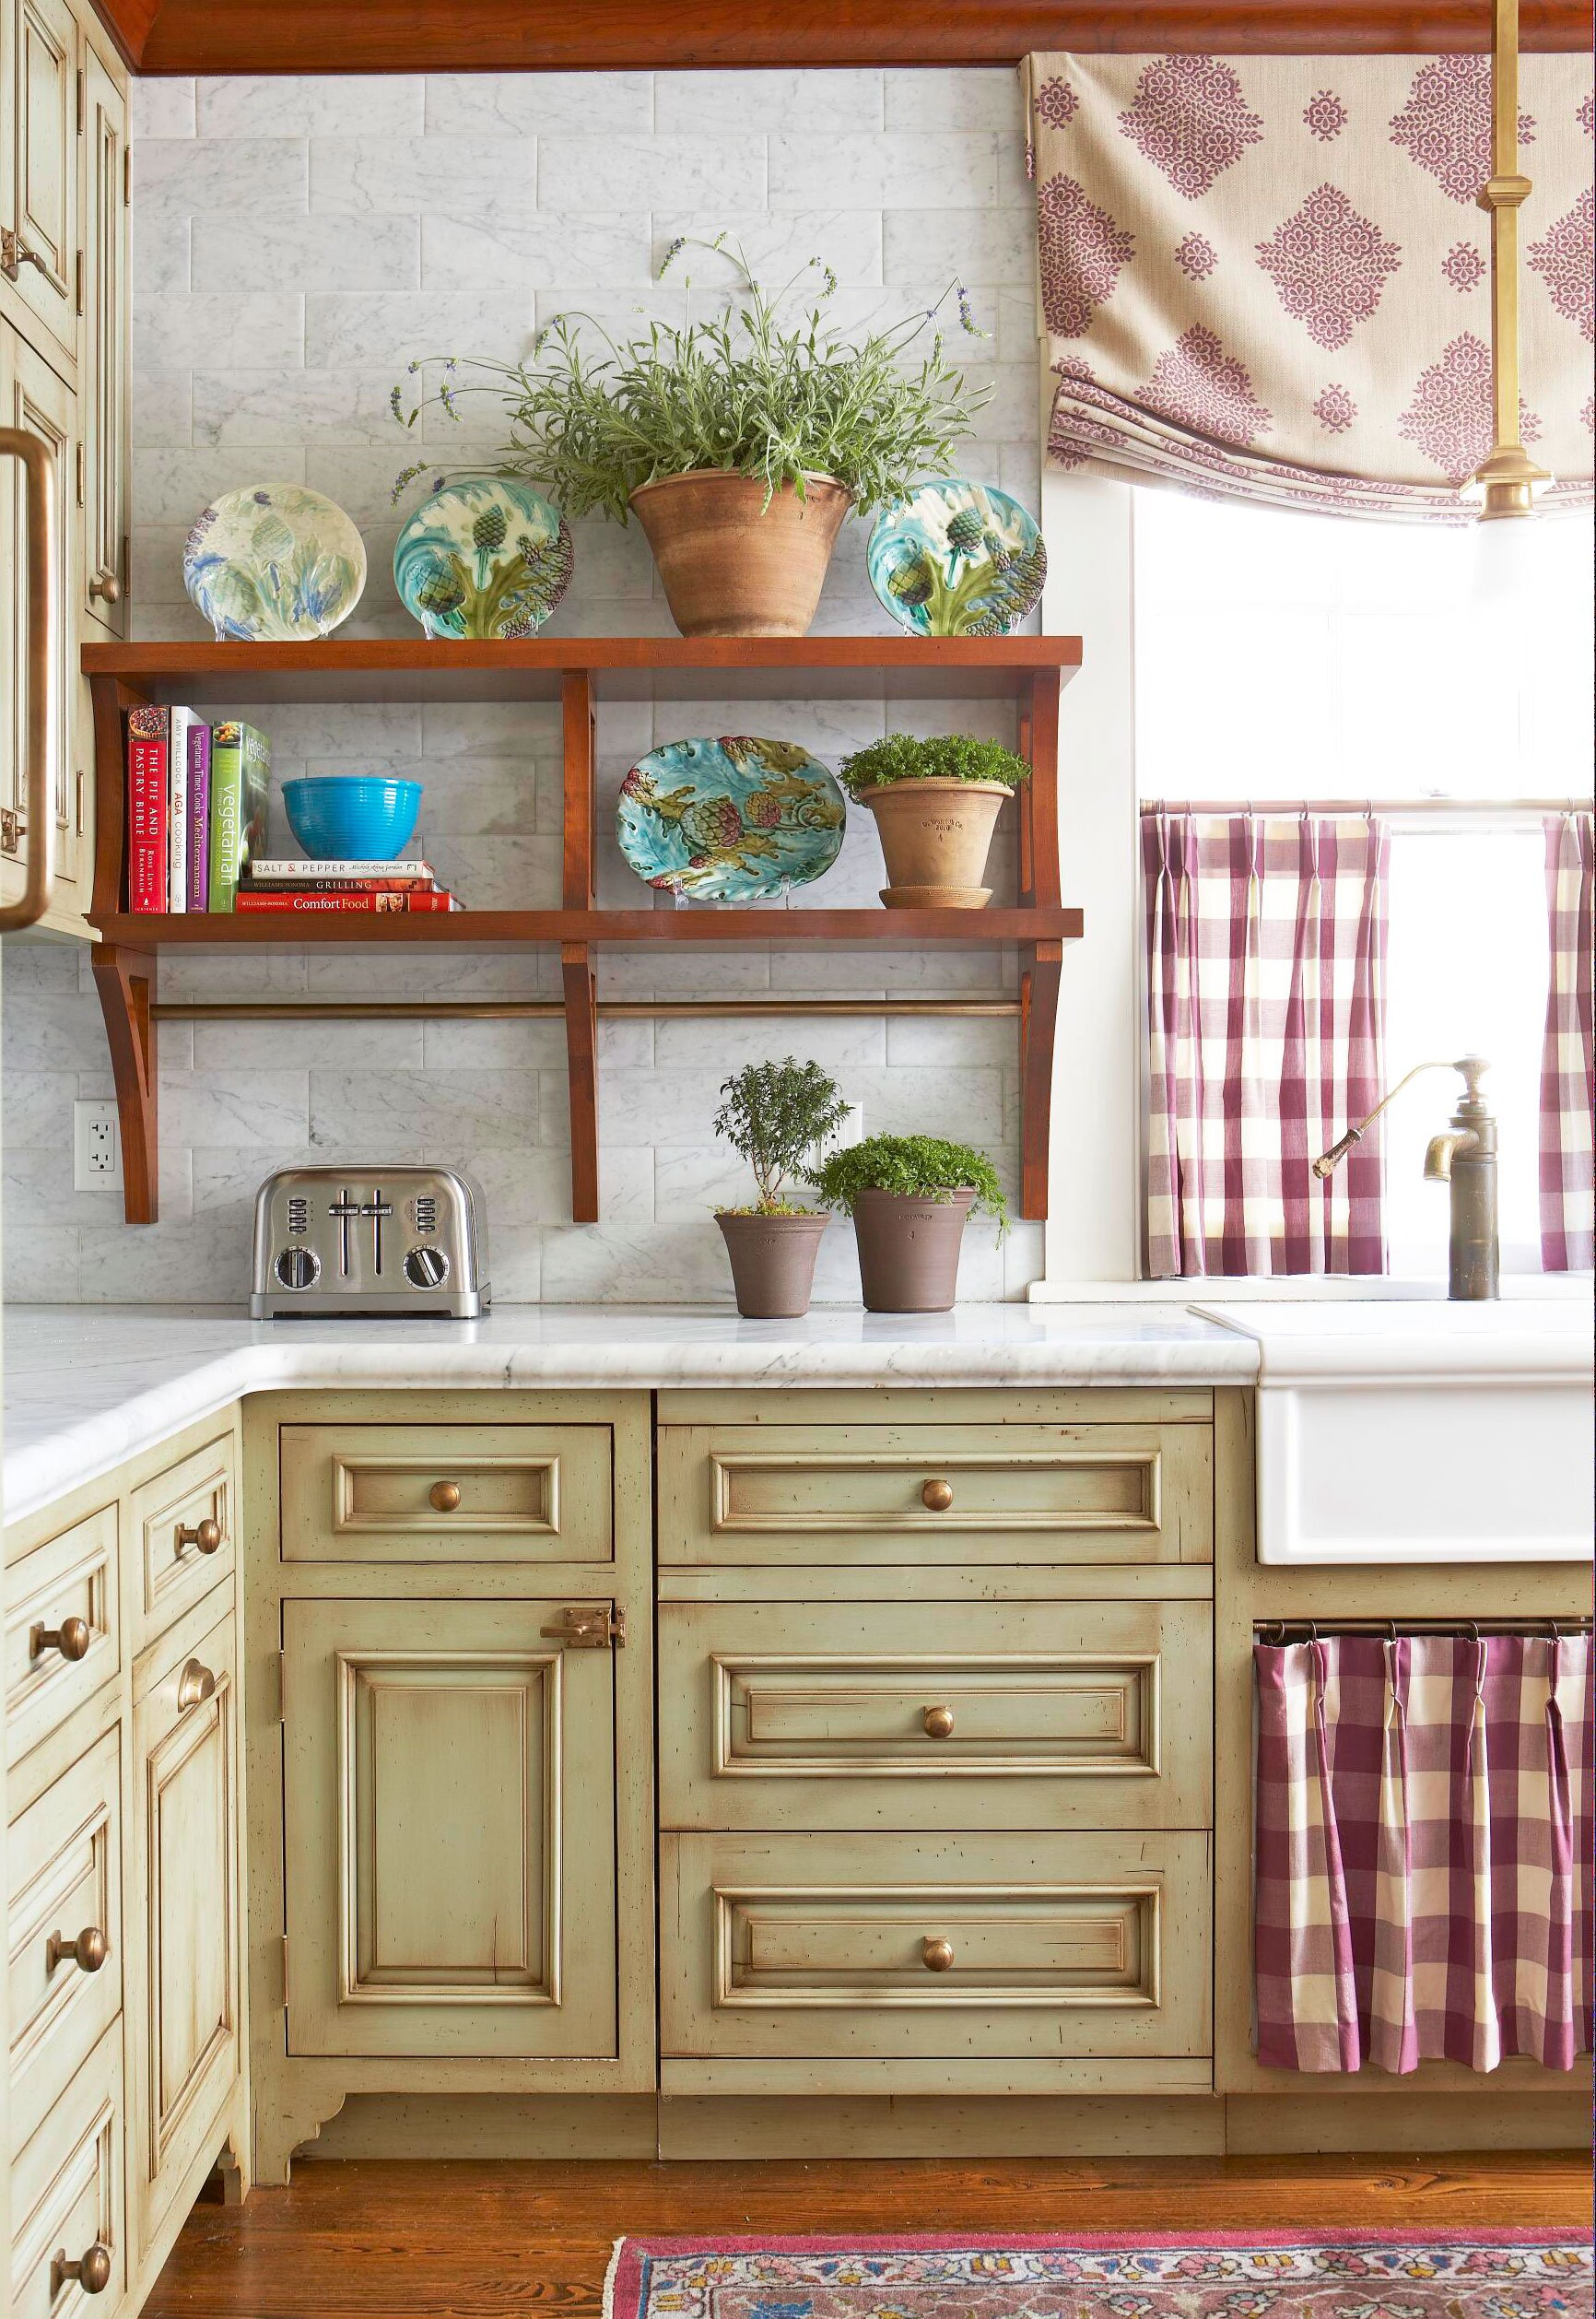 9 Ideas for Kitchen Cabinet Makeovers   Midwest Living